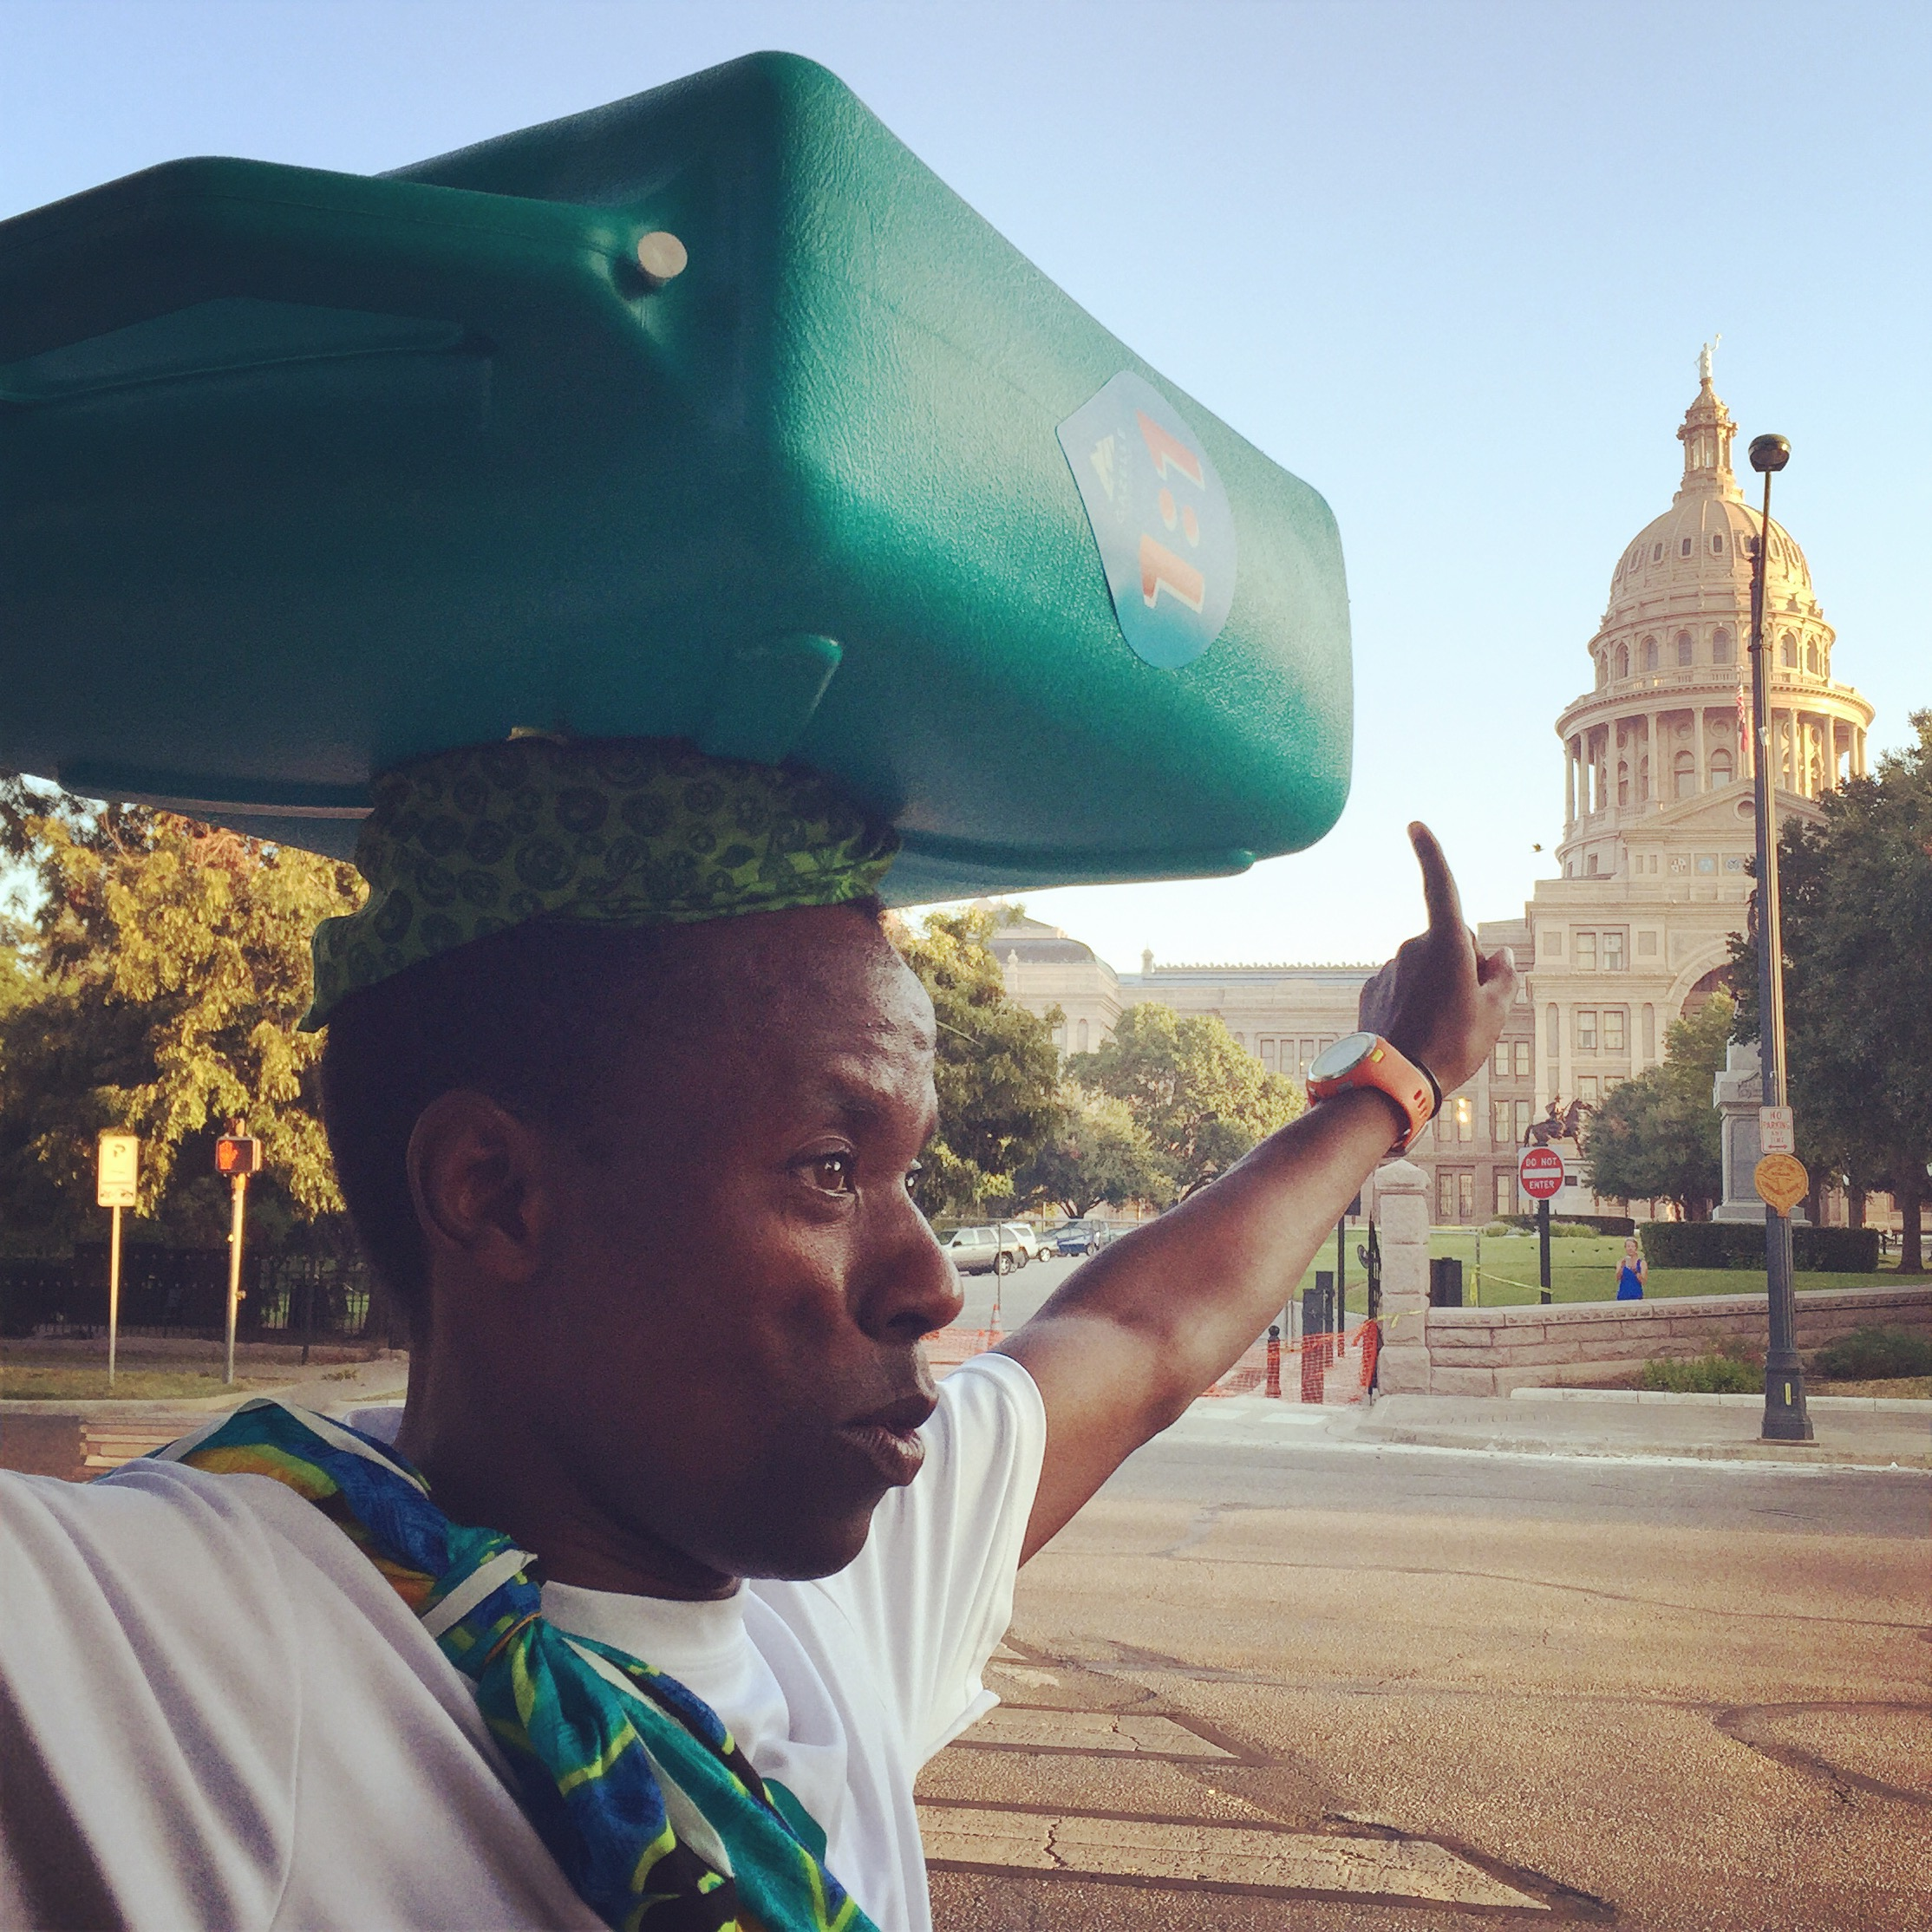 Each year, on the anniversary of his escape, Gilbert Tuhabonye walks to Austin's Capitol building carrying 50 lbs of water.